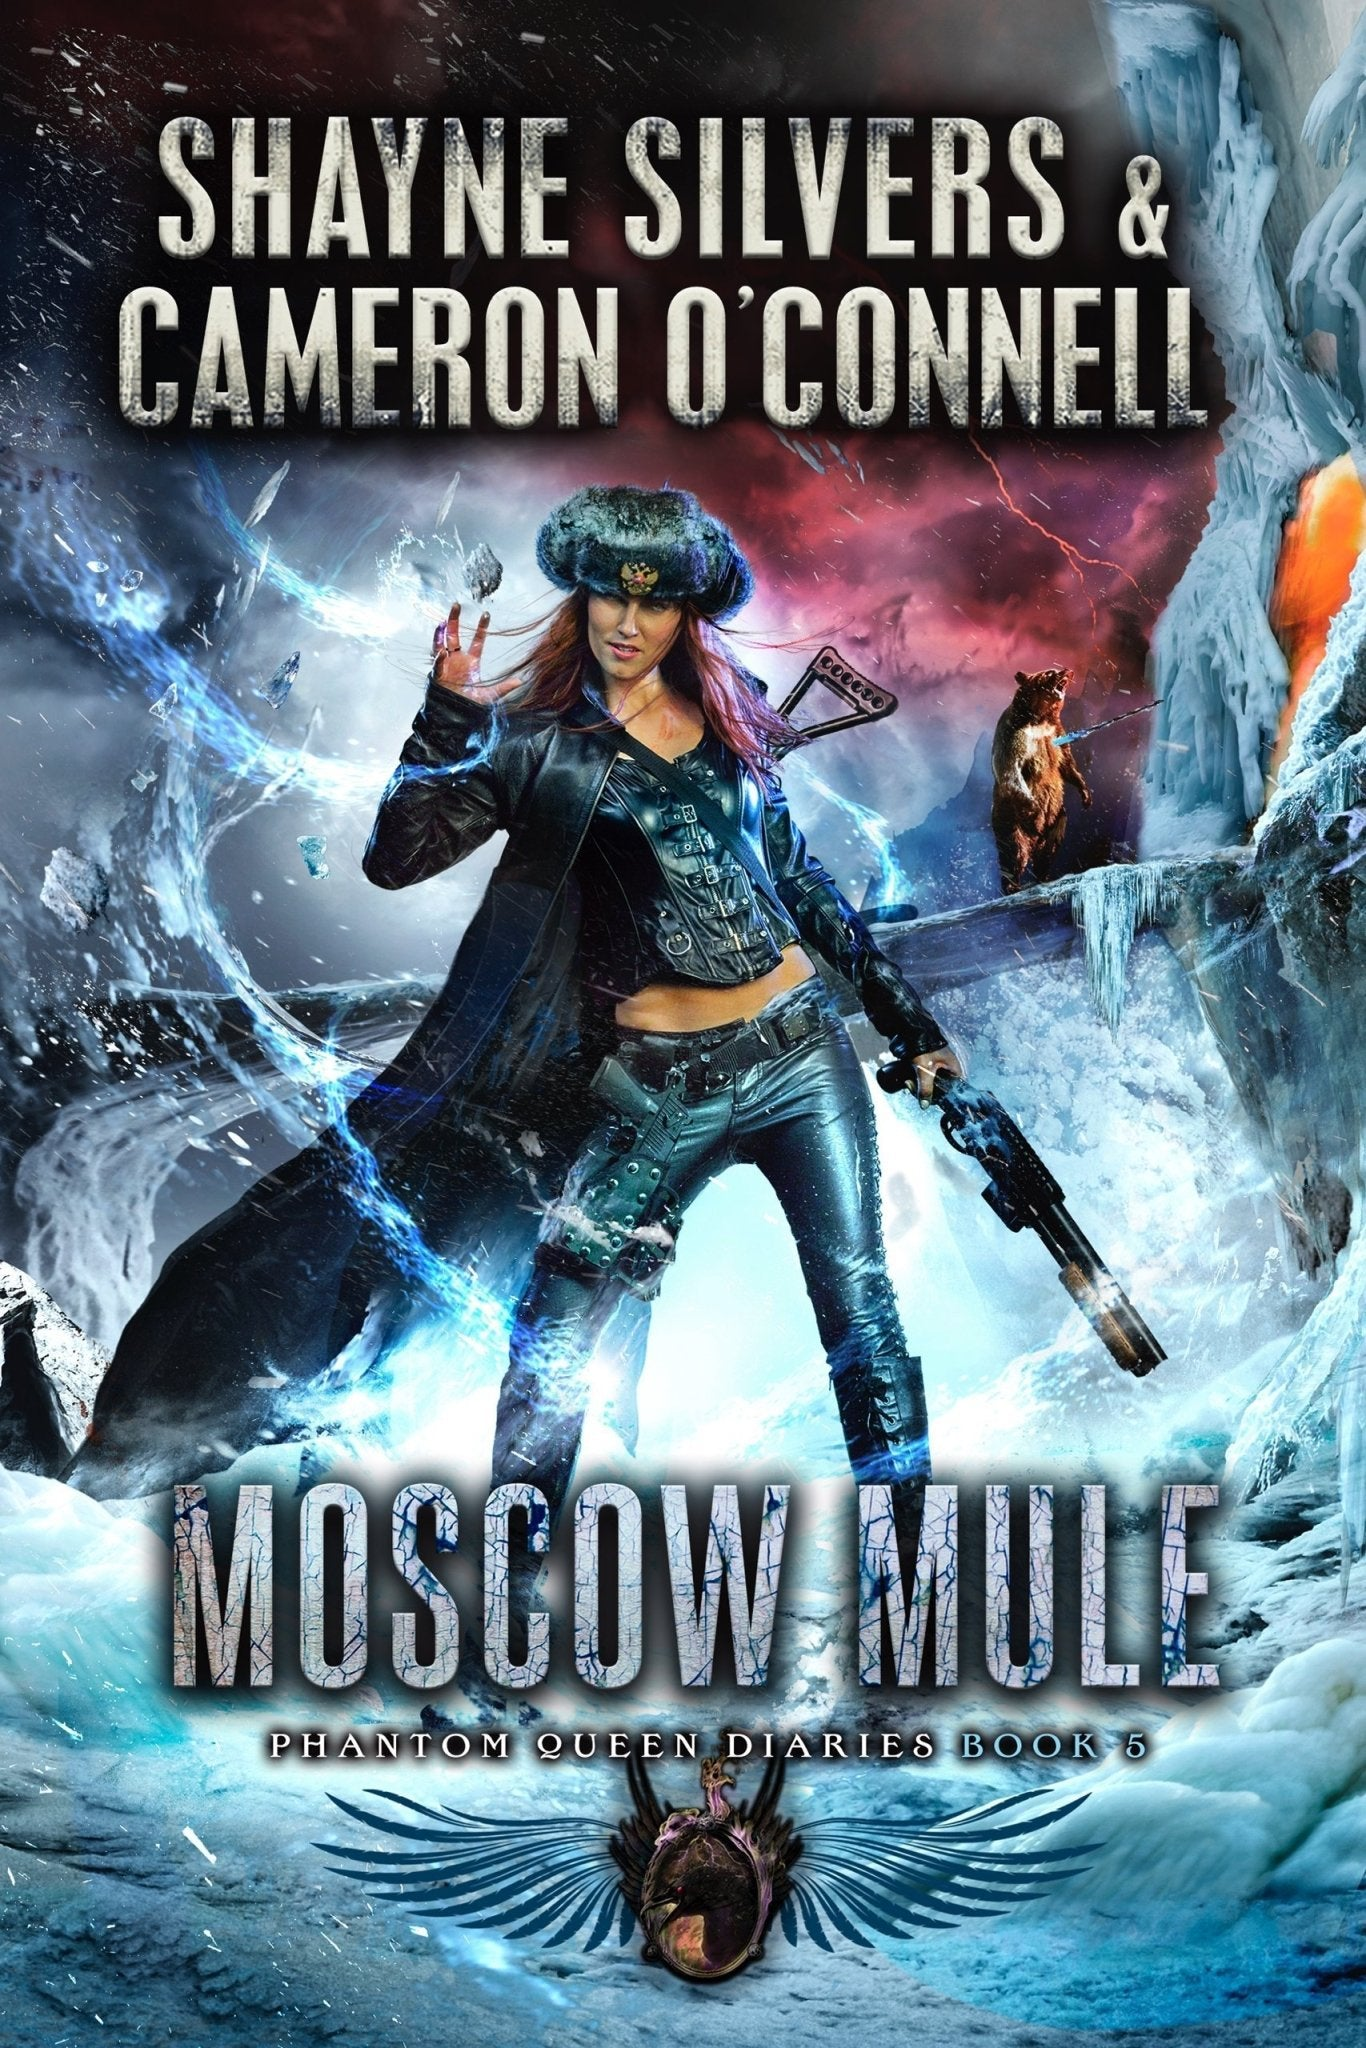 MOSCOW MULE: PHANTOM QUEEN SERIES BOOK 5 (SIGNED COPY) - Temple Verse Gear